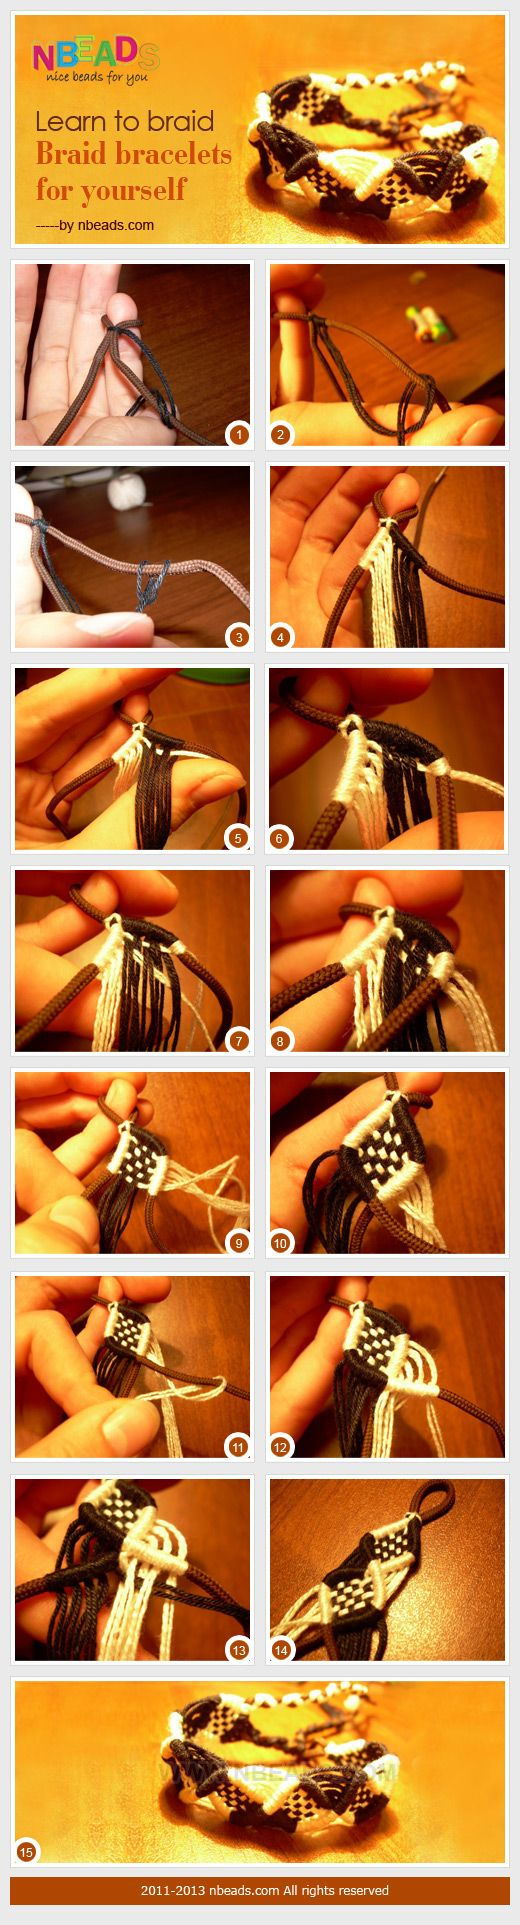 Learn to braid - Braid bracelets for yourself